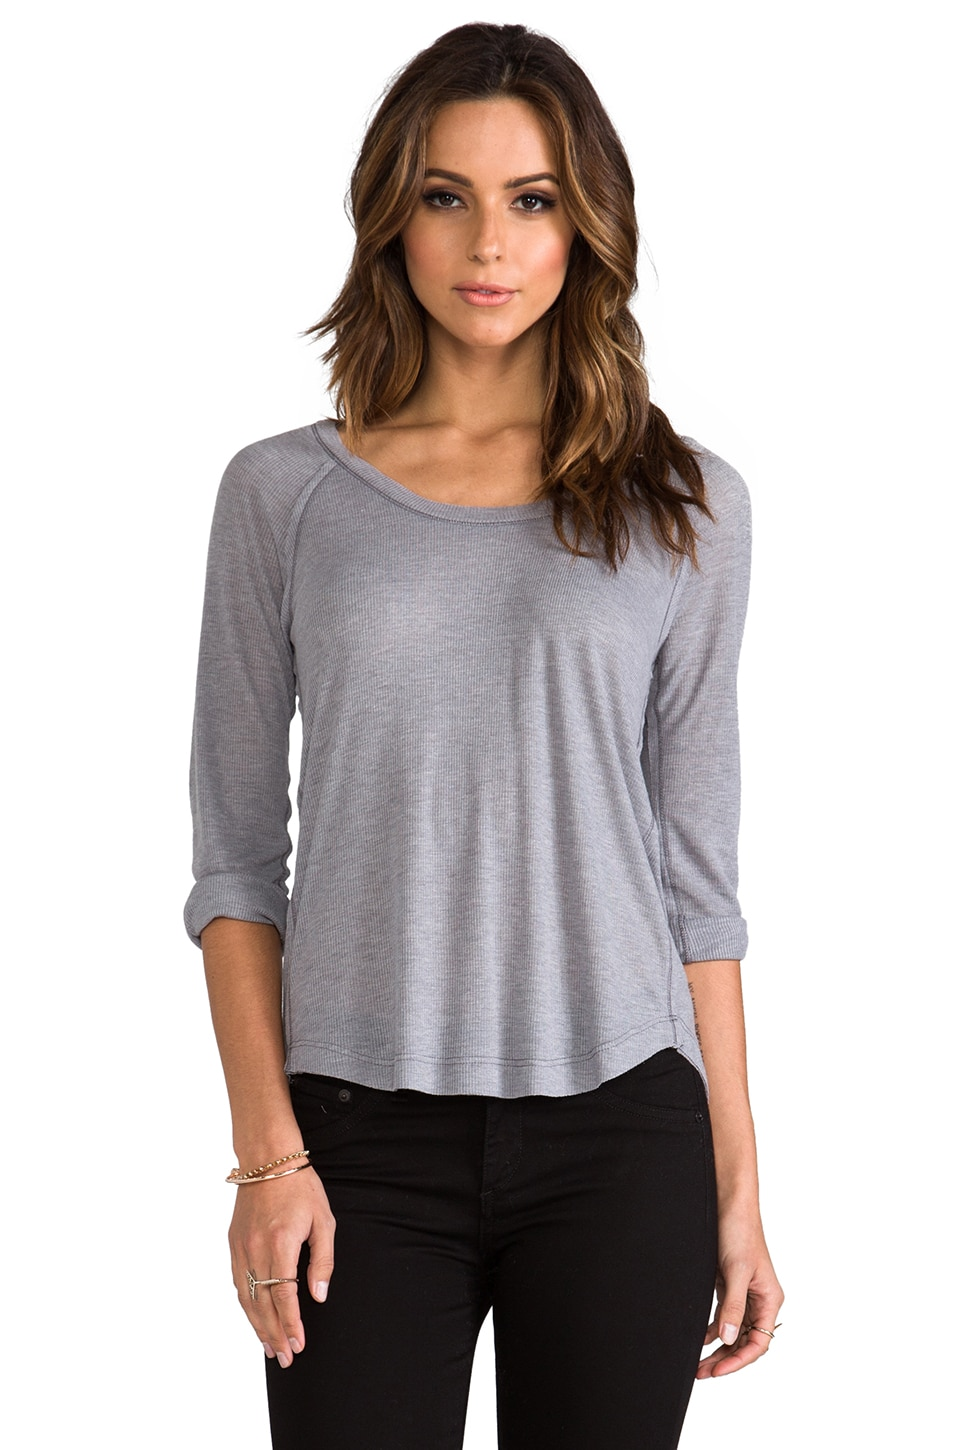 Splendid Drapey Rib Tee in Dark Heather